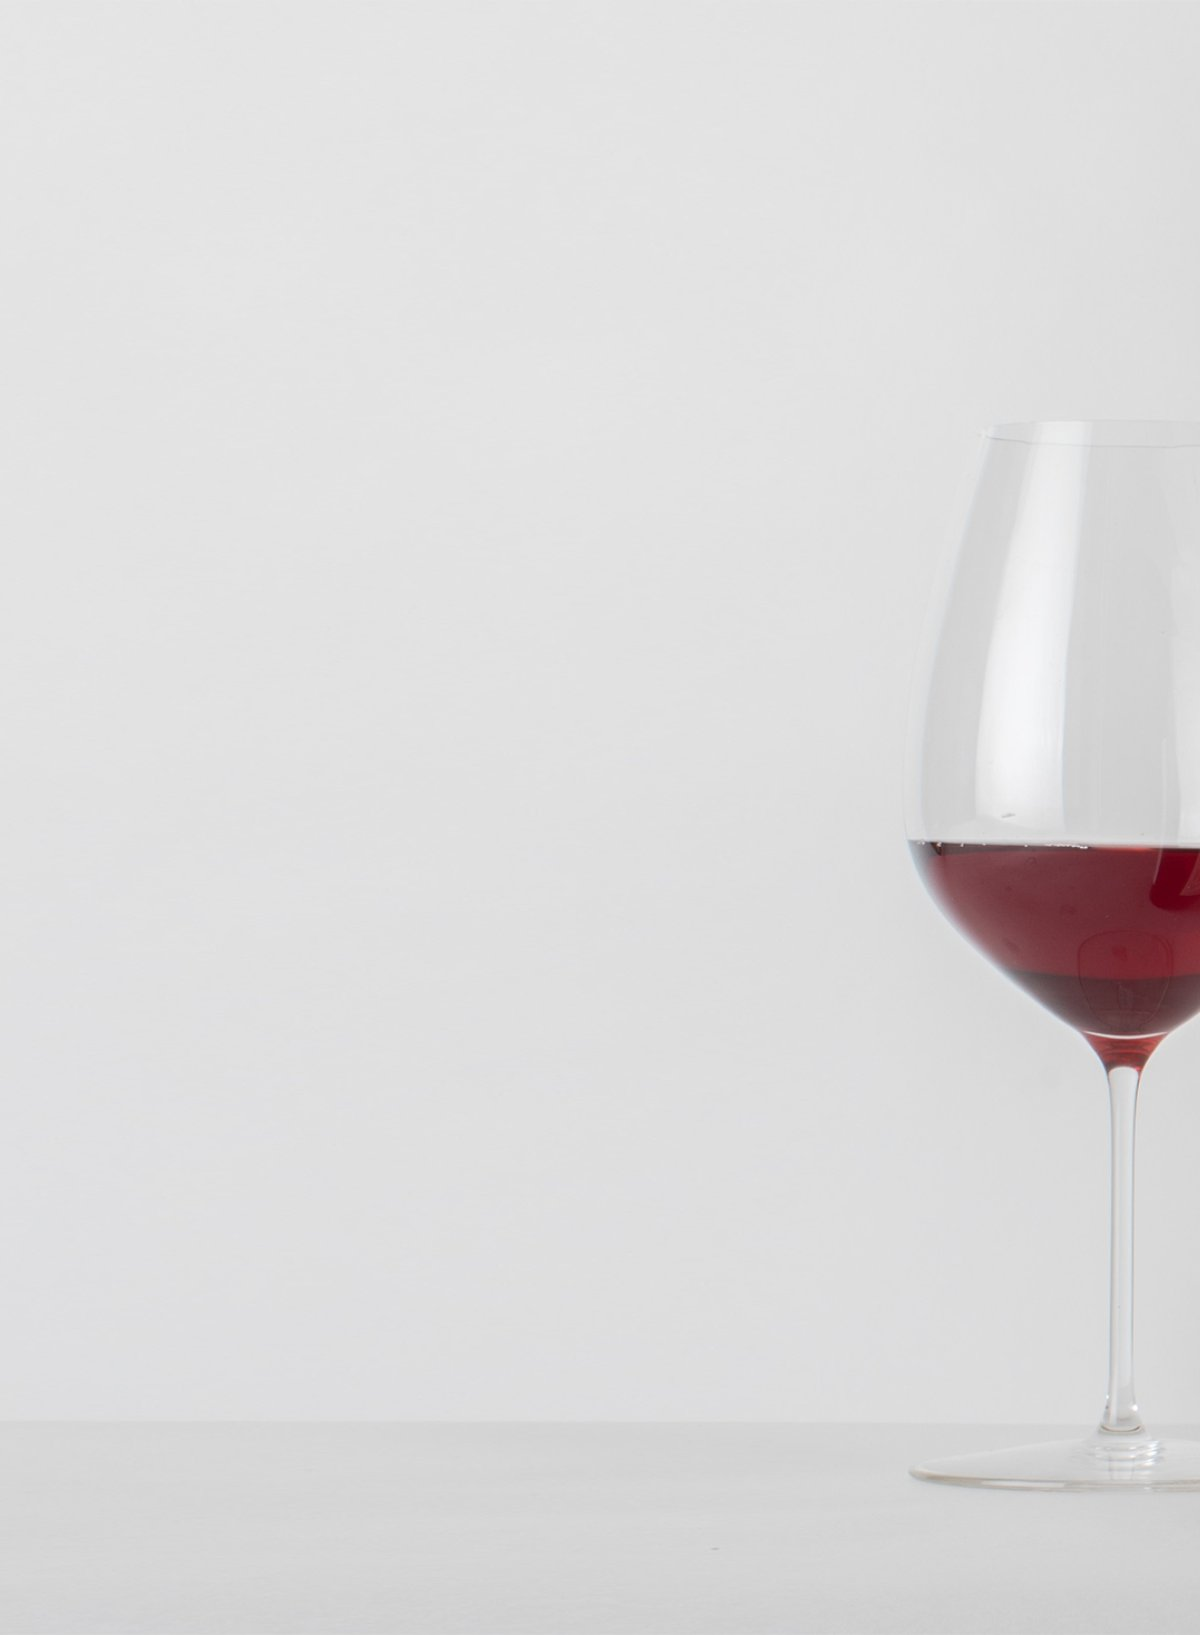 Two wines with glasses